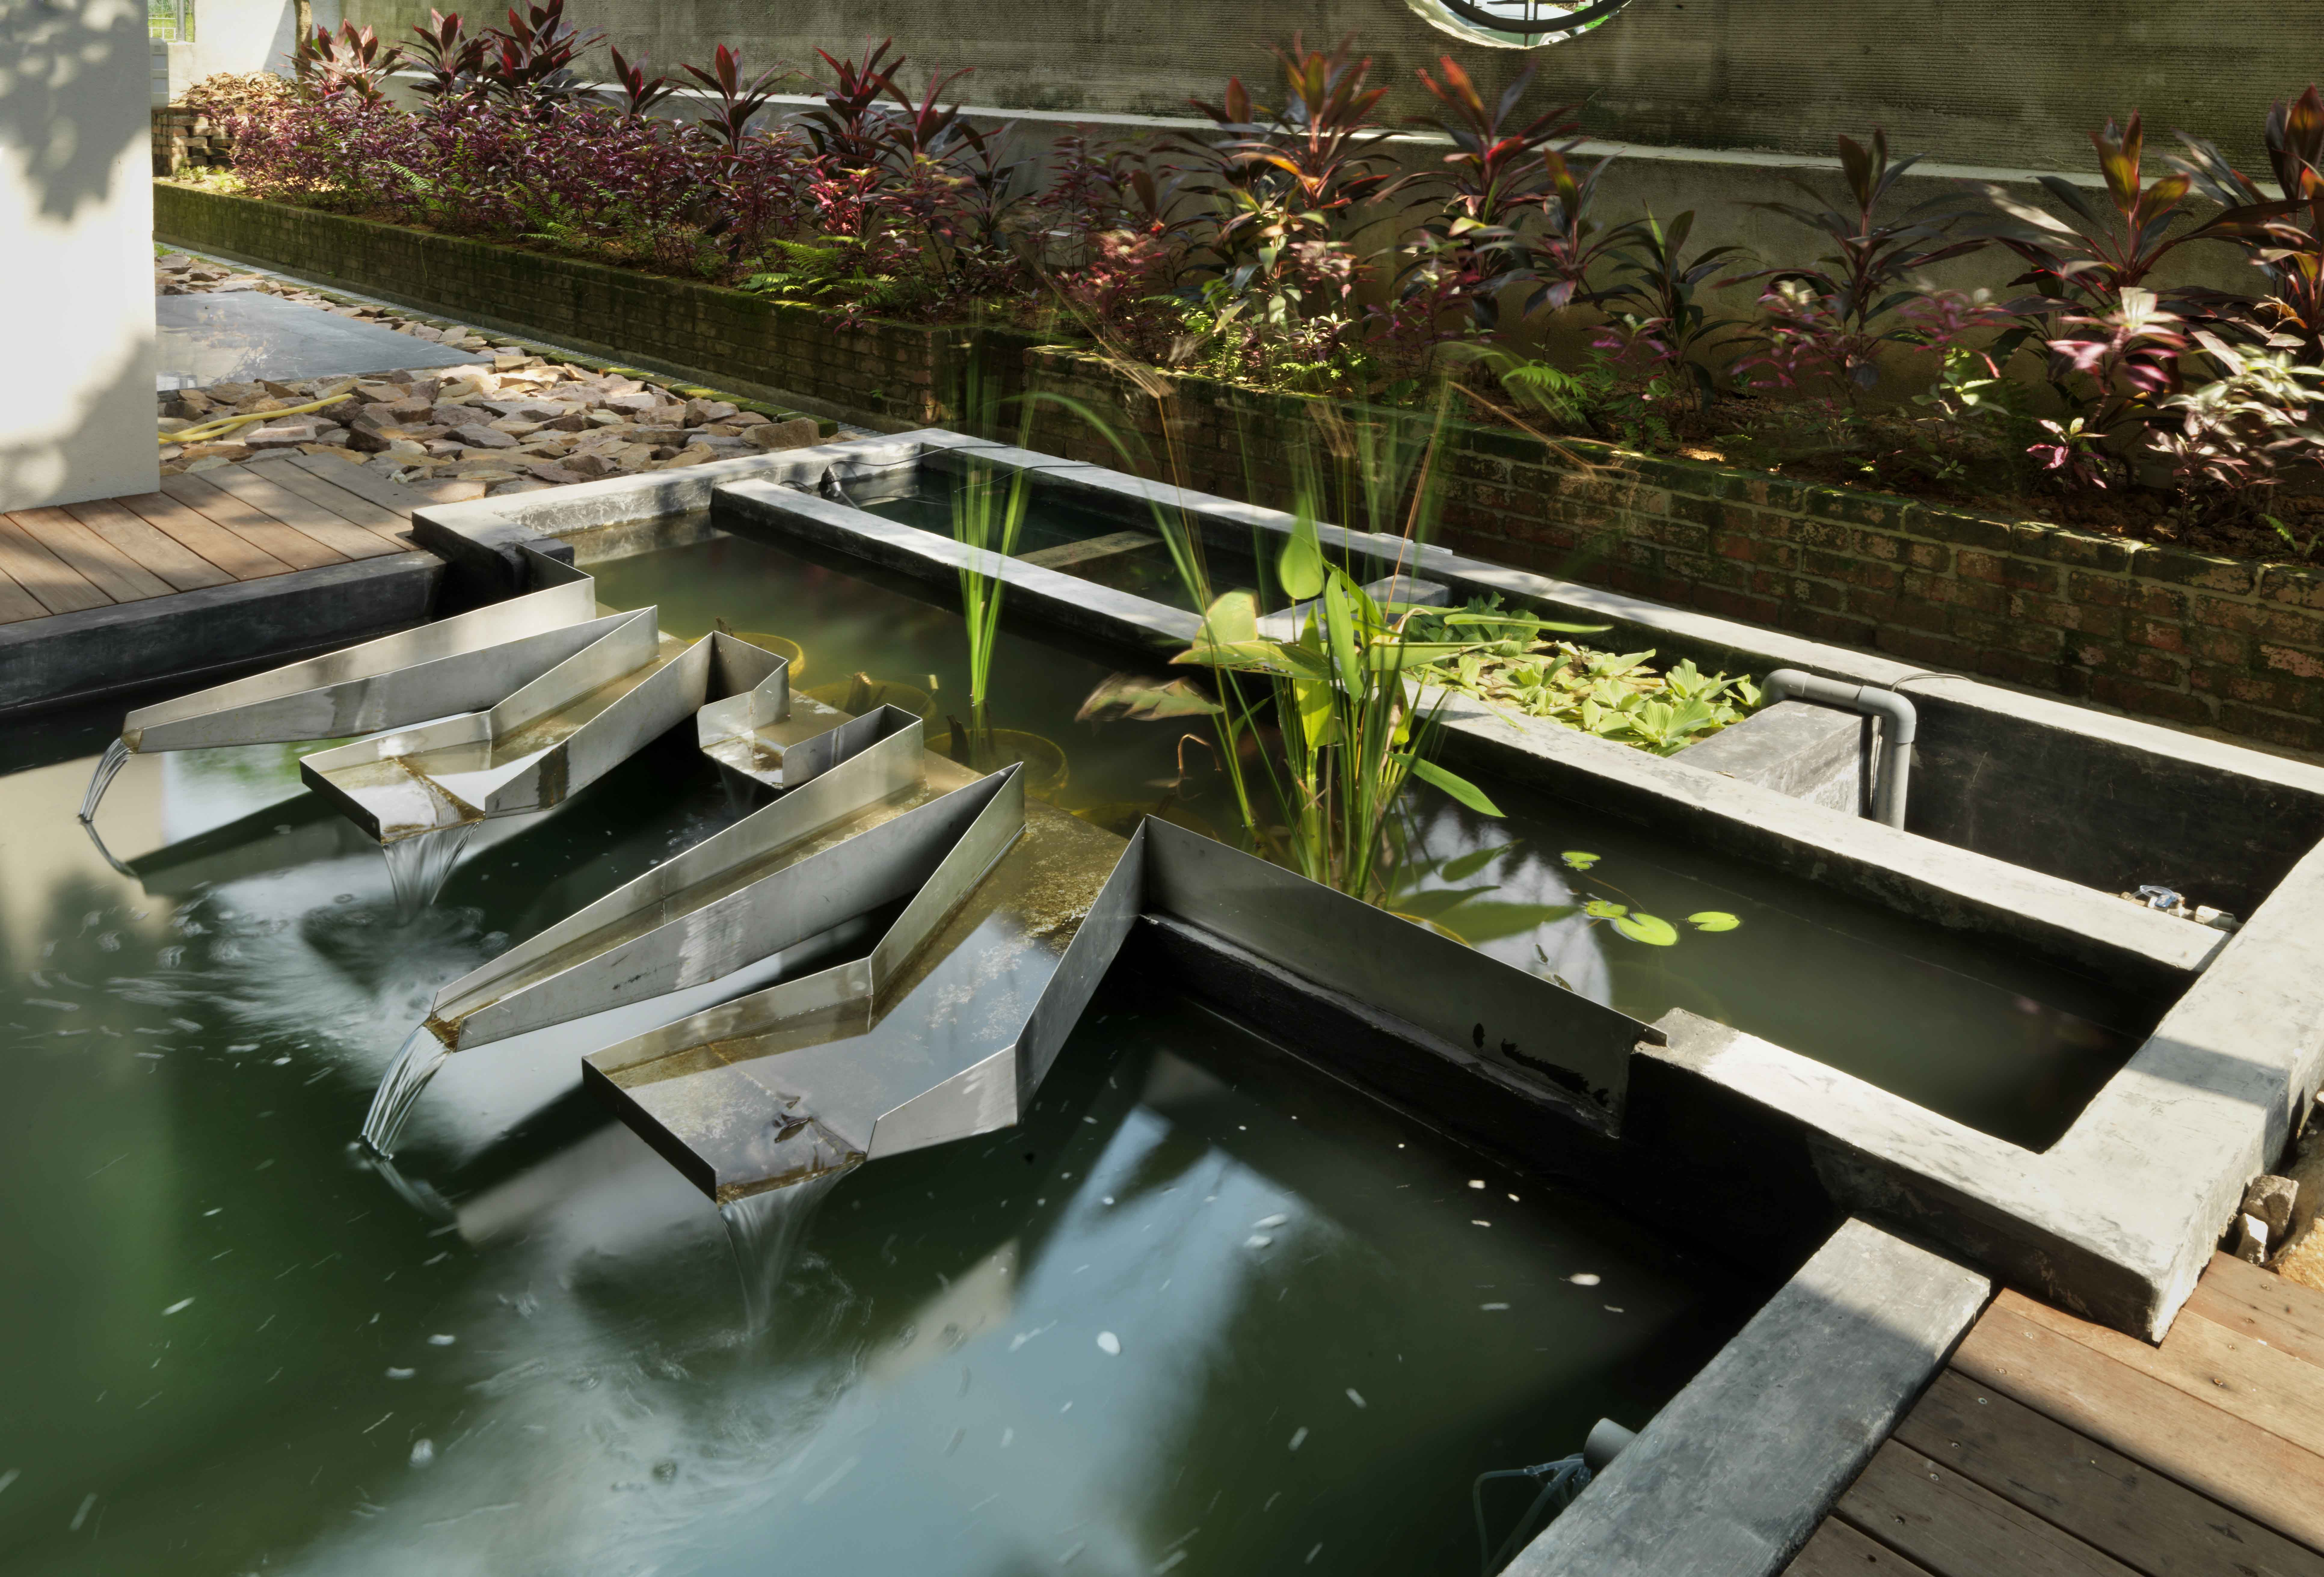 S11 house malaysia s first gbi platinum cva rated house for Pond design in civil 3d